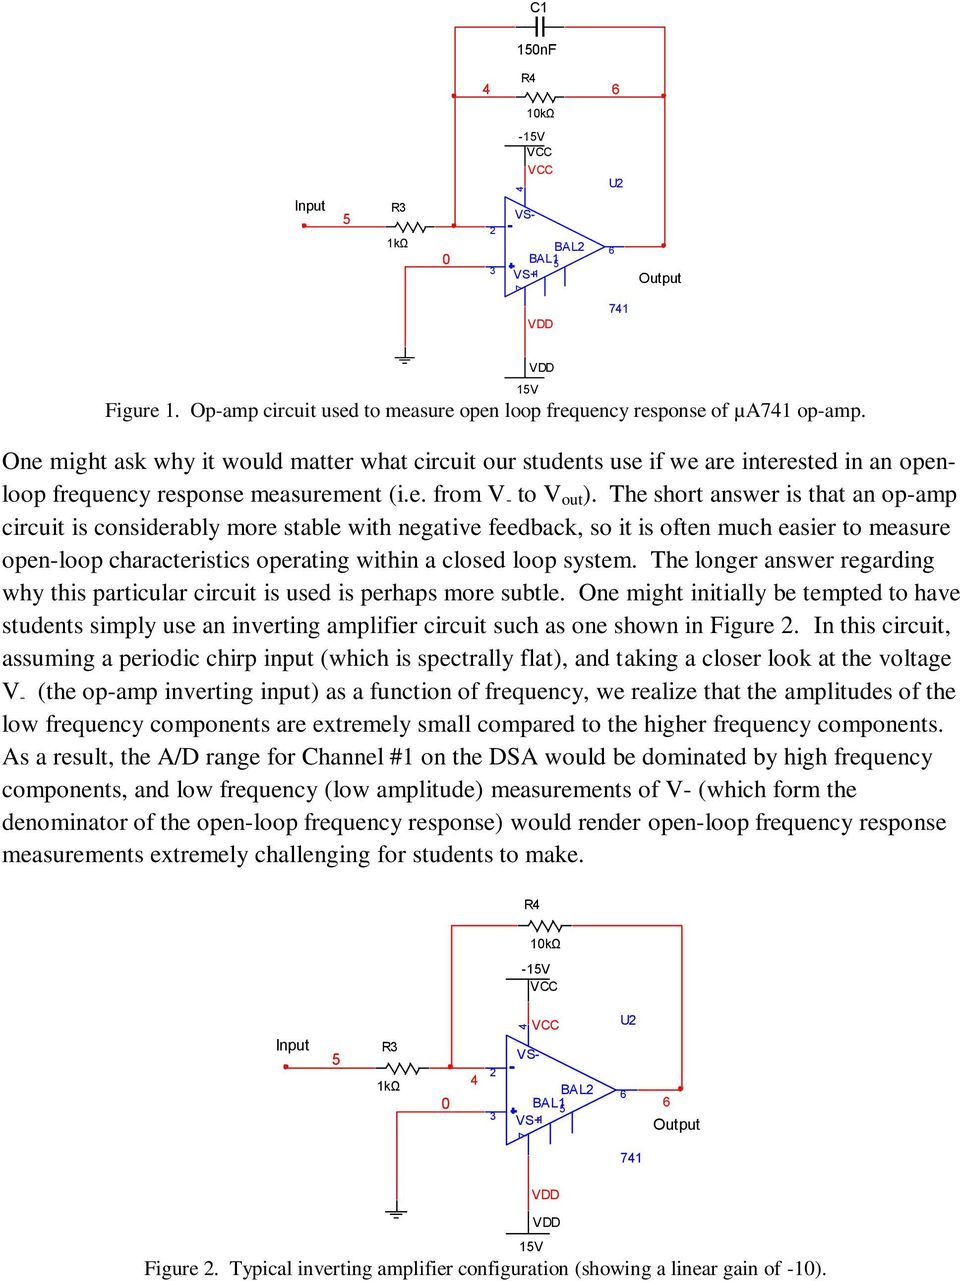 Ac Measurement Of Op Amp Parameters Using Vec Tor Signal Circuit 741 A 12 Watt Audio Amplifier Operating On Dual The Short Answer Is That An Considerably More Stable With Negative